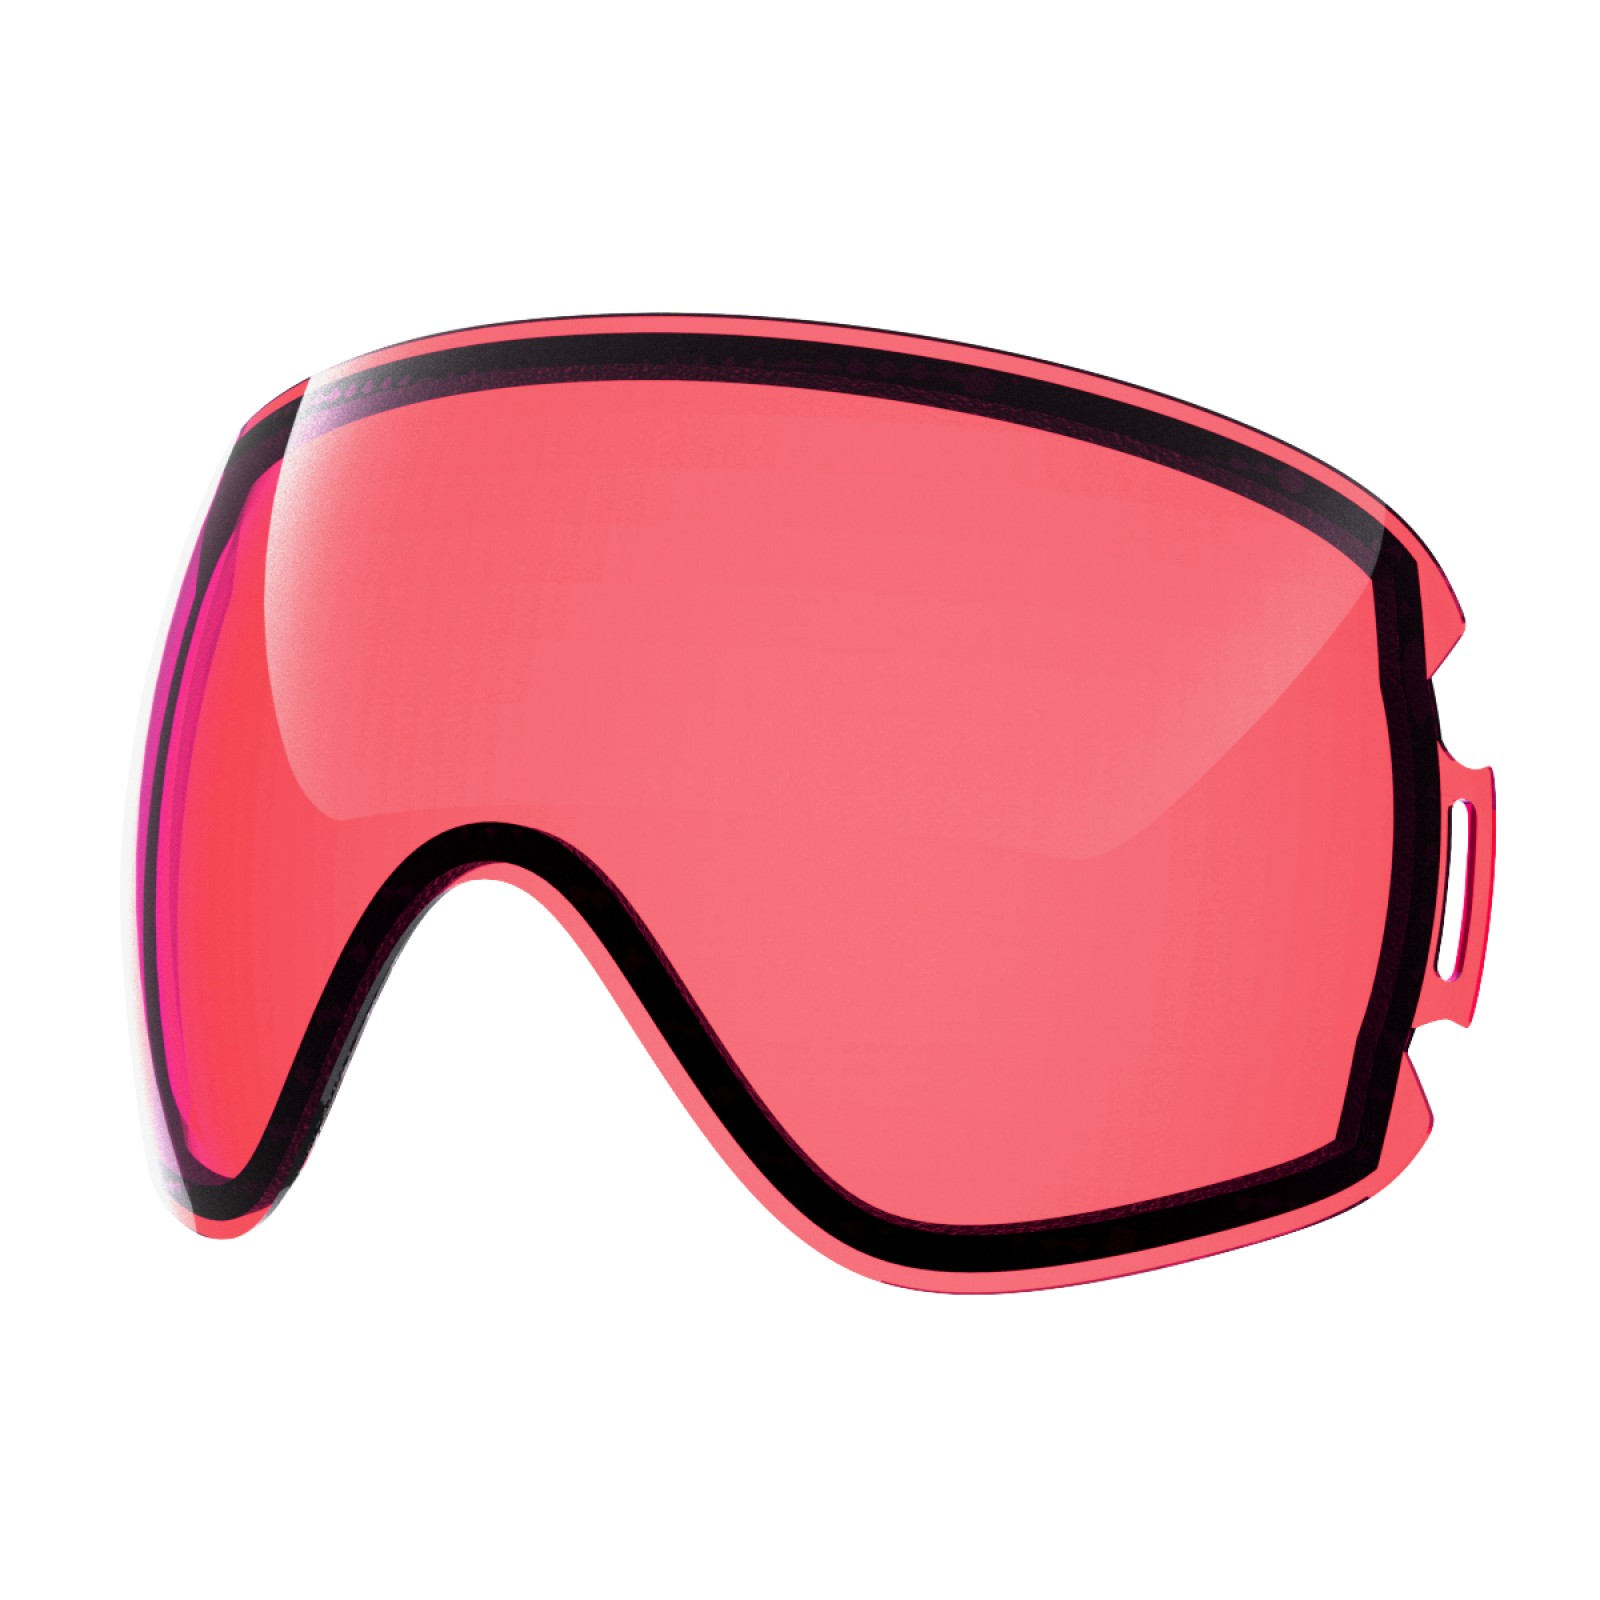 Storm lens for  Open goggle